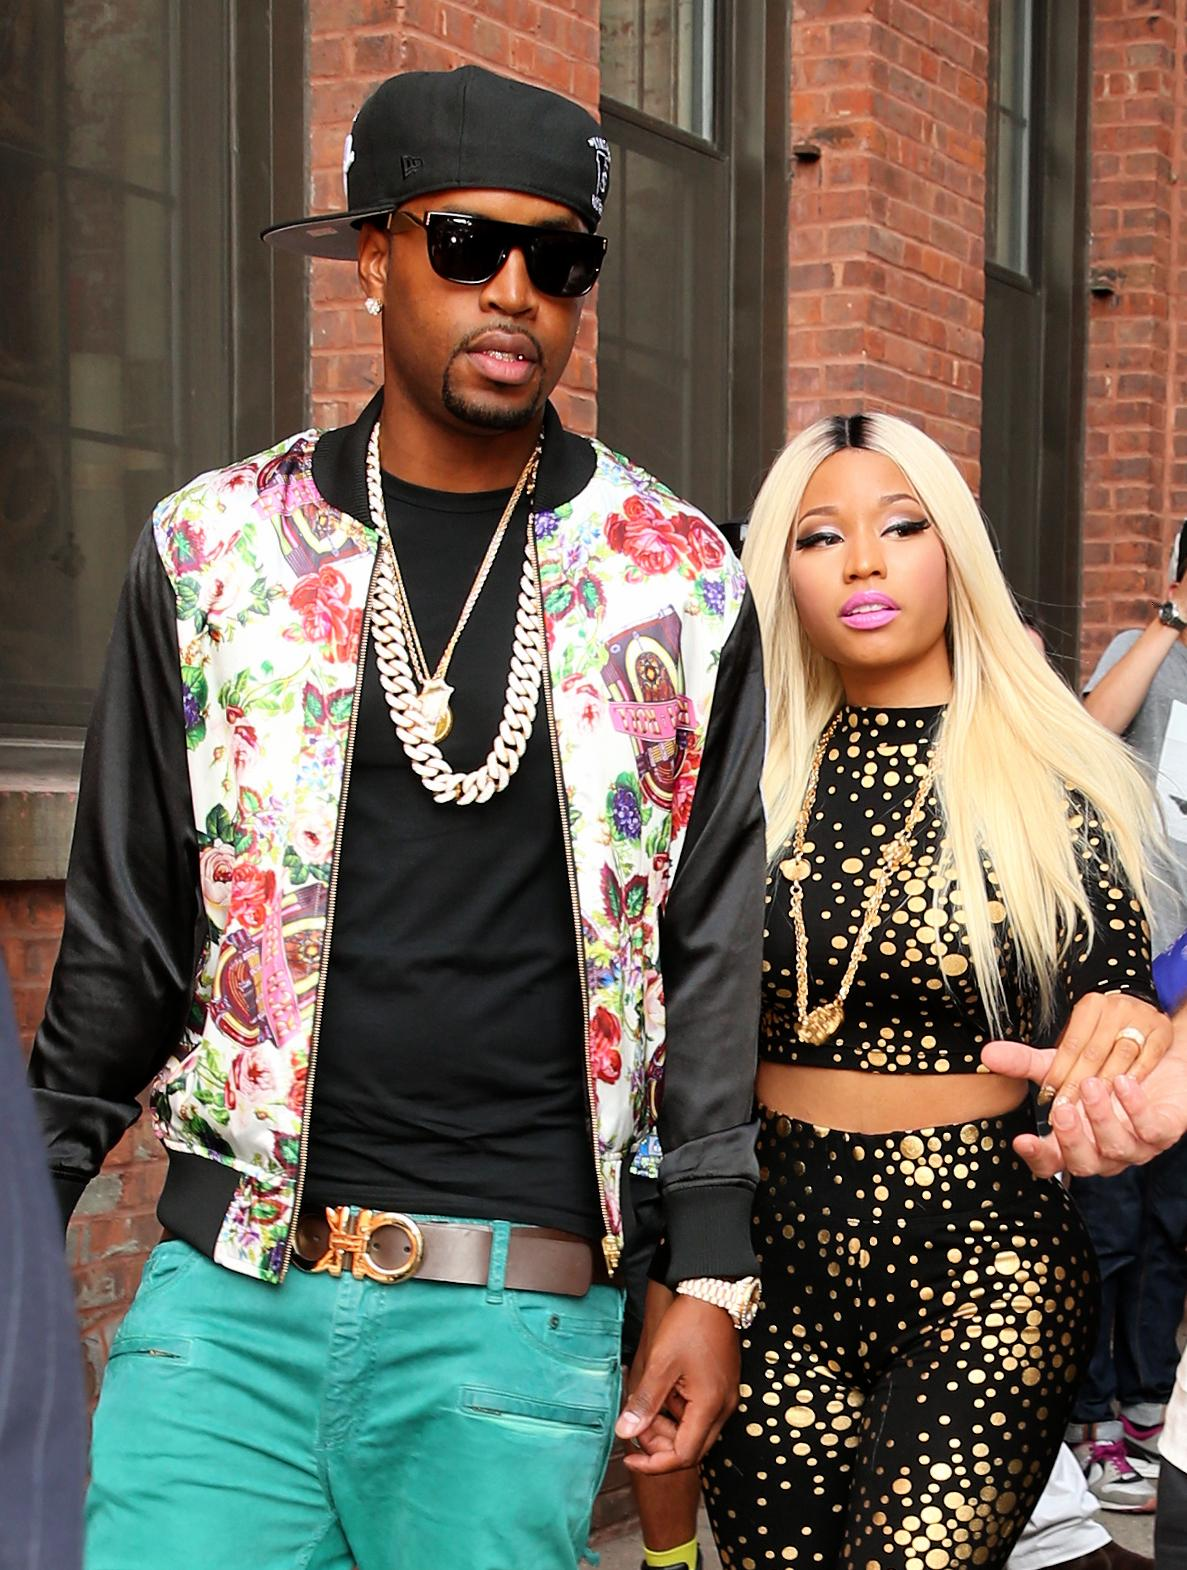 Singer Nicki Minaj leaves the Jeremy Scott fashion show with Safaree ¿Scaff Beezy¿ Samuels at Milk Studios in New York City